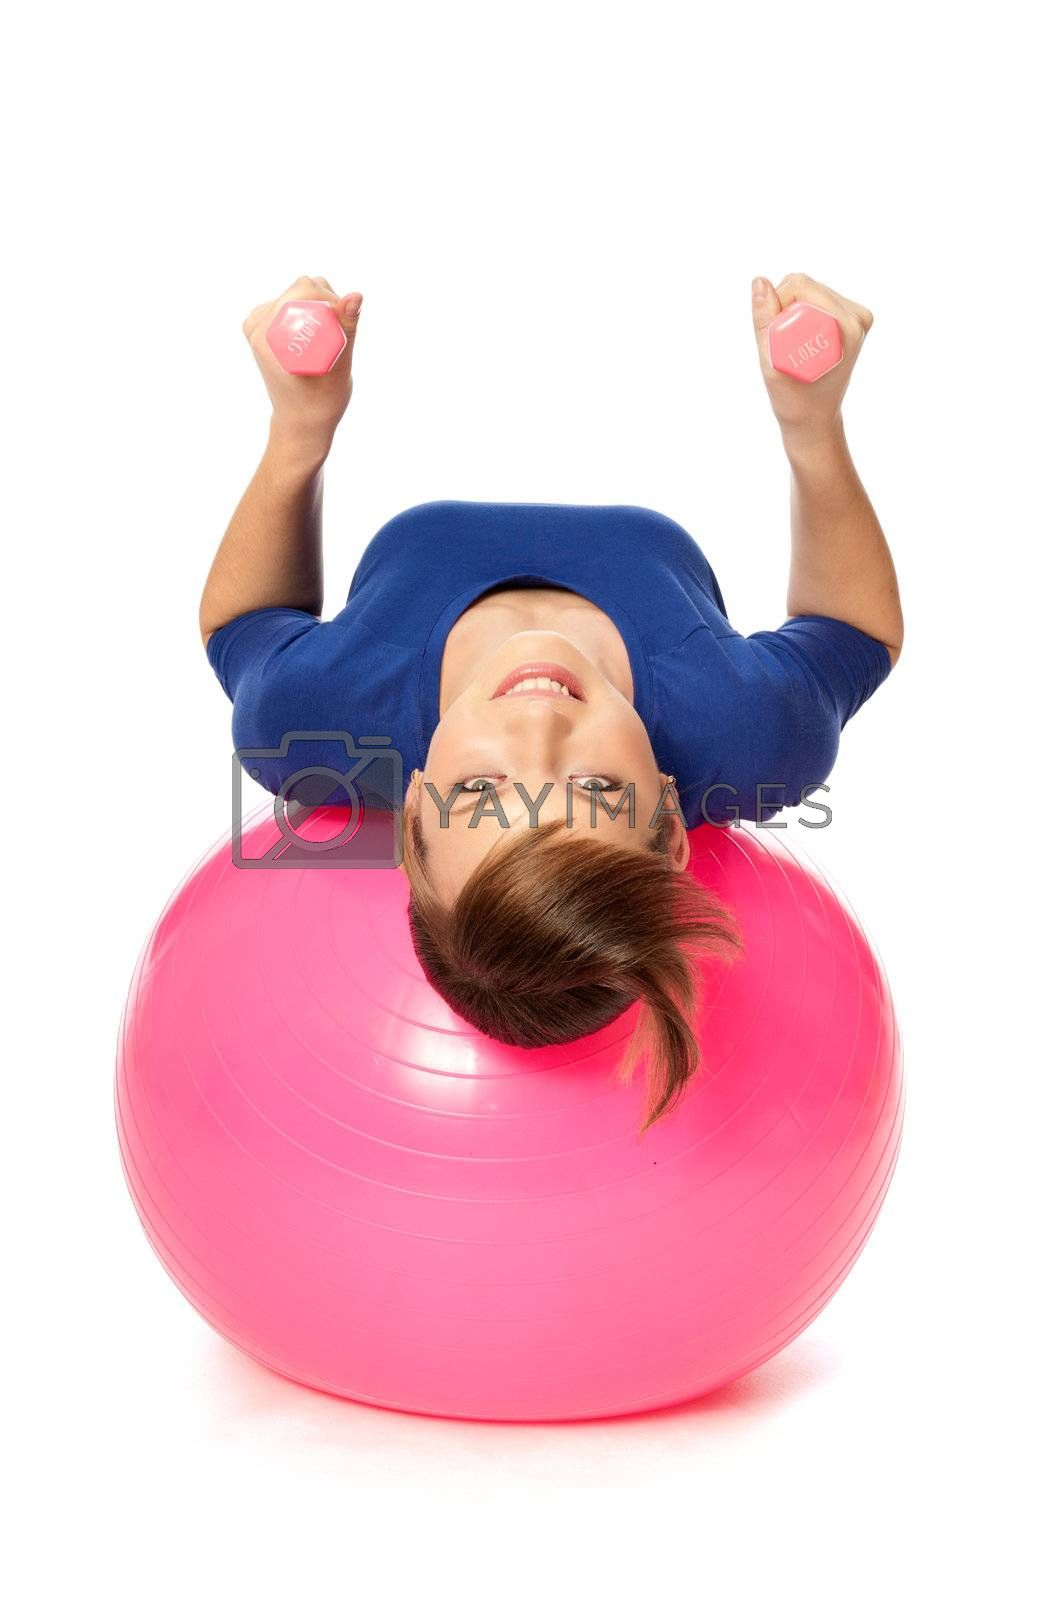 instructor showing exercises using ball and dumbbells at gym to people